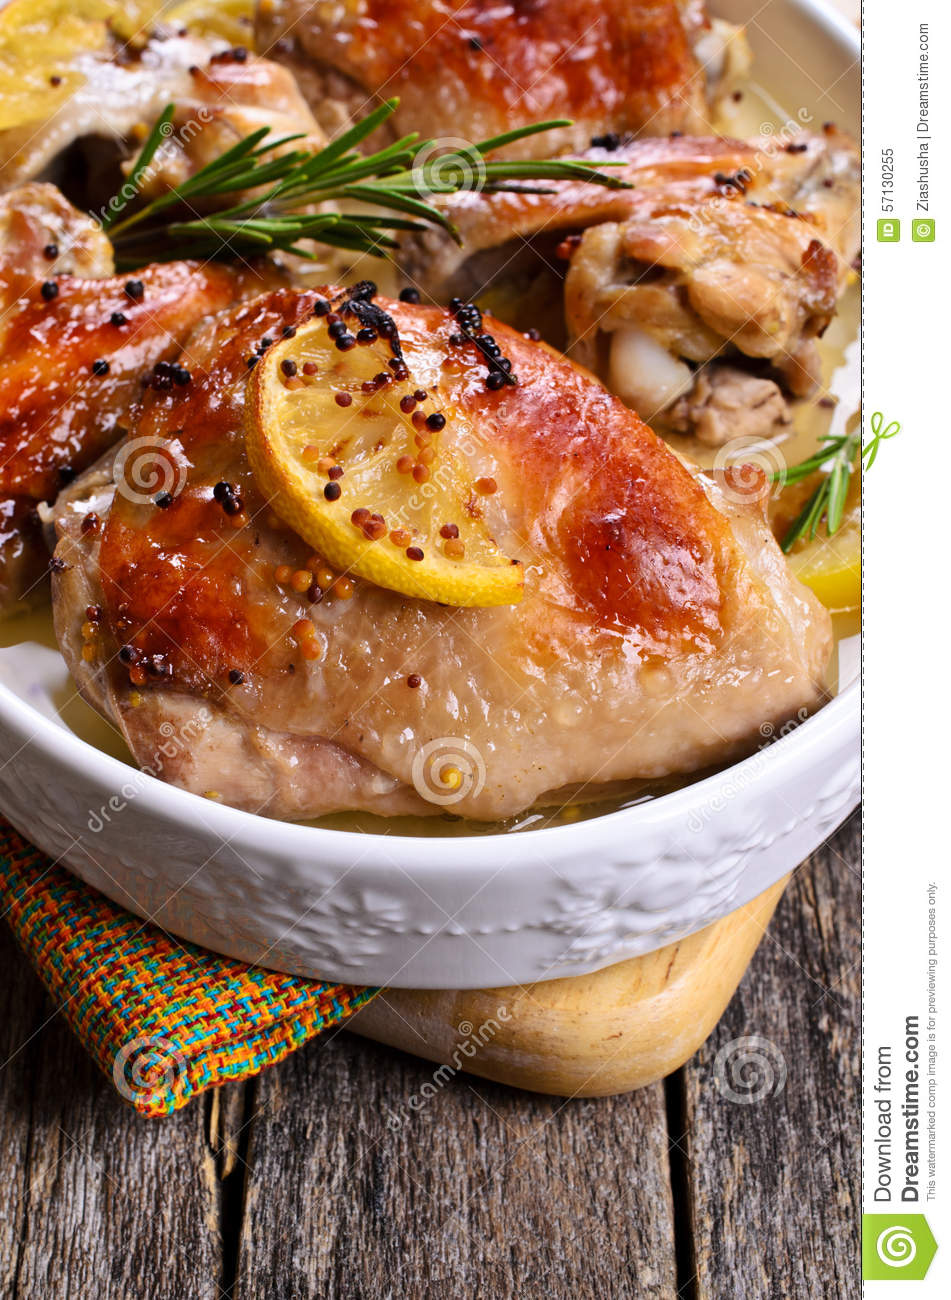 Stuffed Chicken Breasts With Rosemary-Orange Dressing Recipe ...